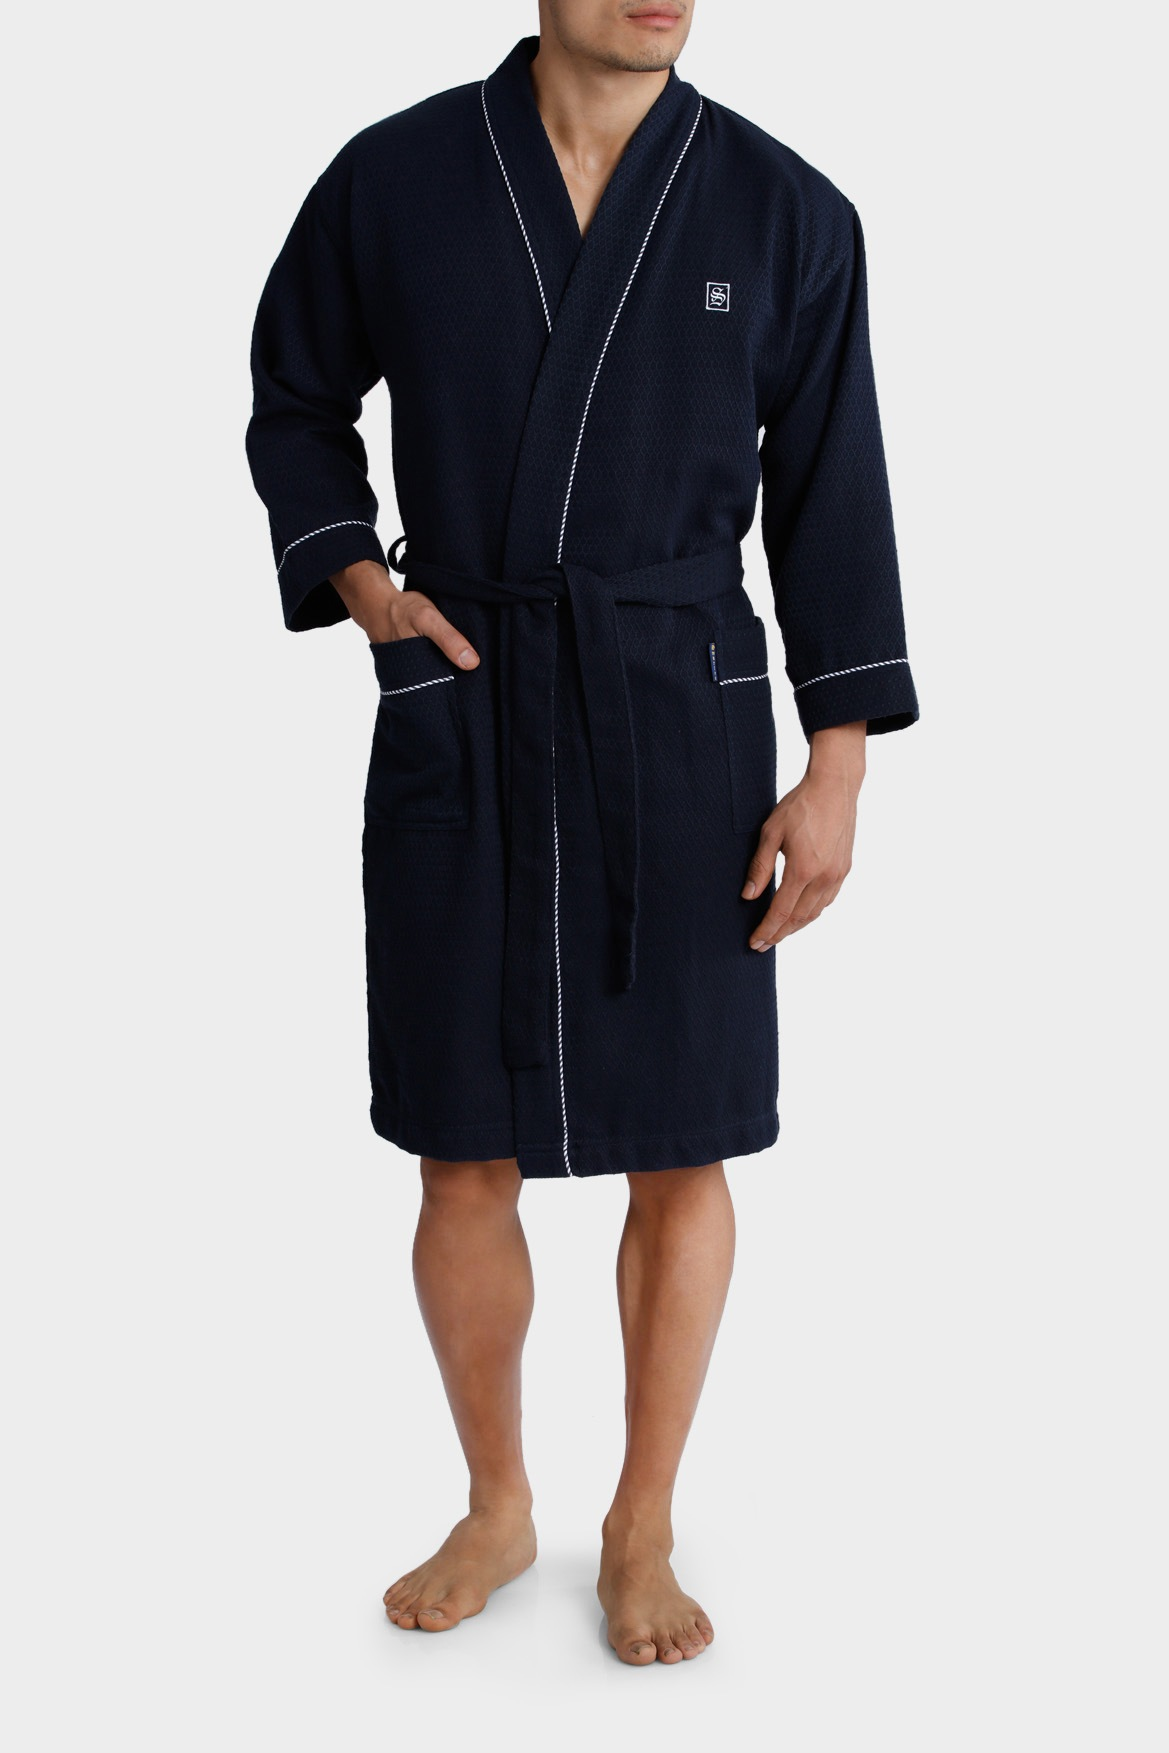 Smartex | Waffle Weave Dressing Gown | Myer Online